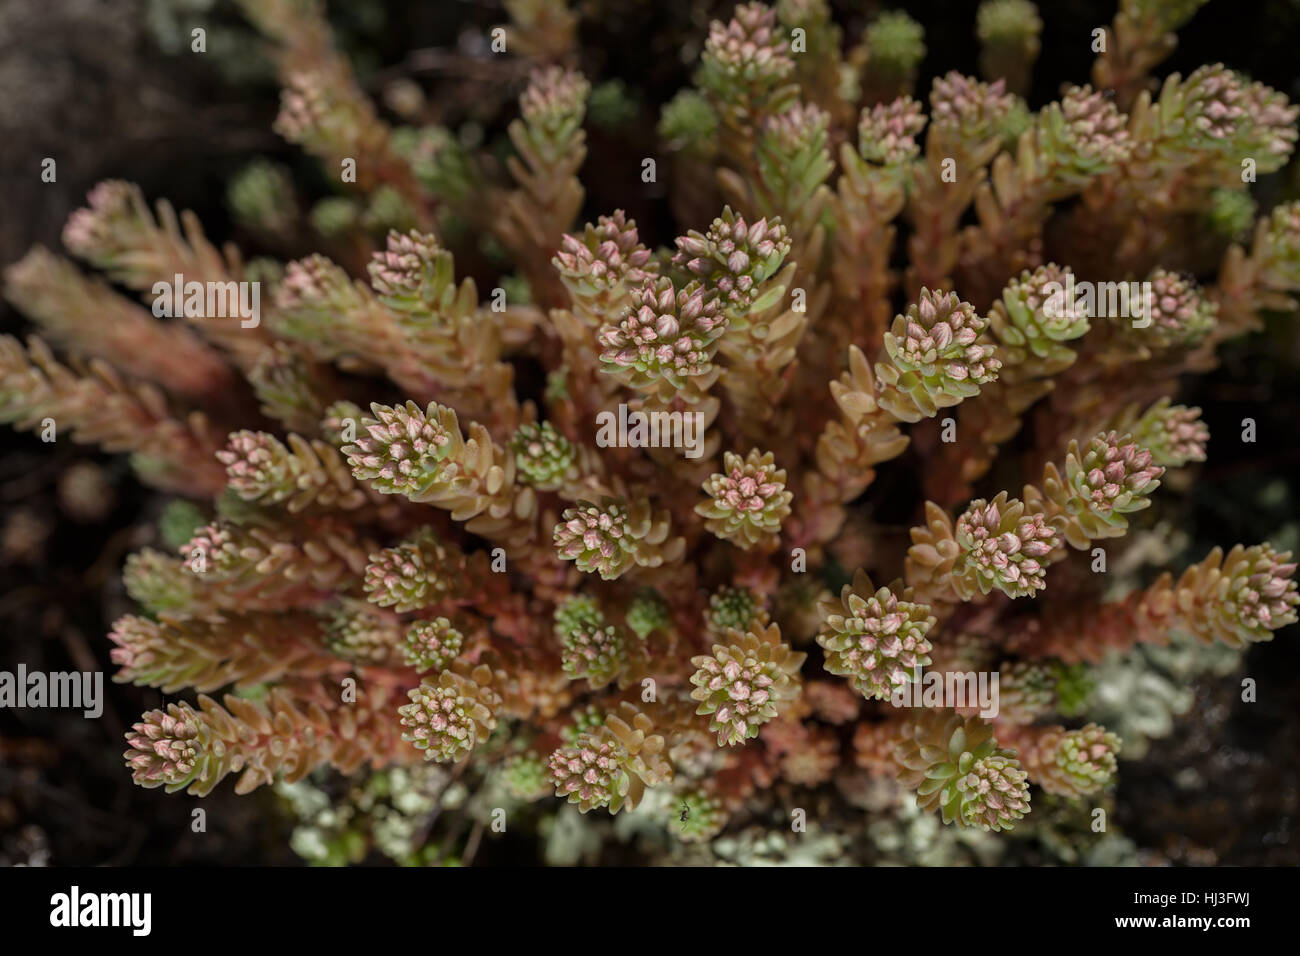 a variety of stonecrop on the stone in nature, note shallow depth of field Stock Photo